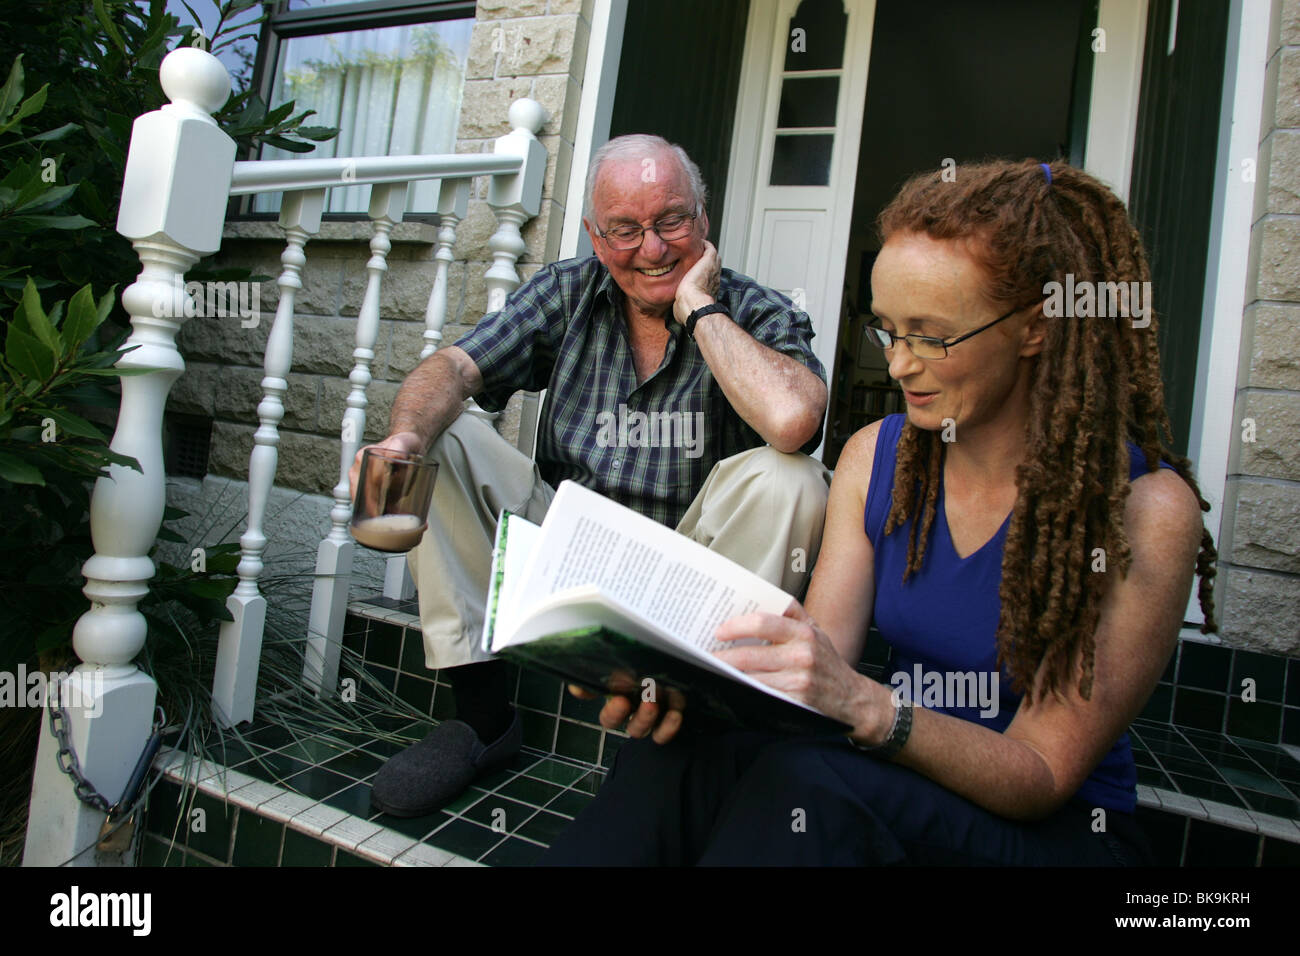 Author Emily Gee in Nelson, New Zealand, with her famous fiction writer father Maurice. - Stock Image